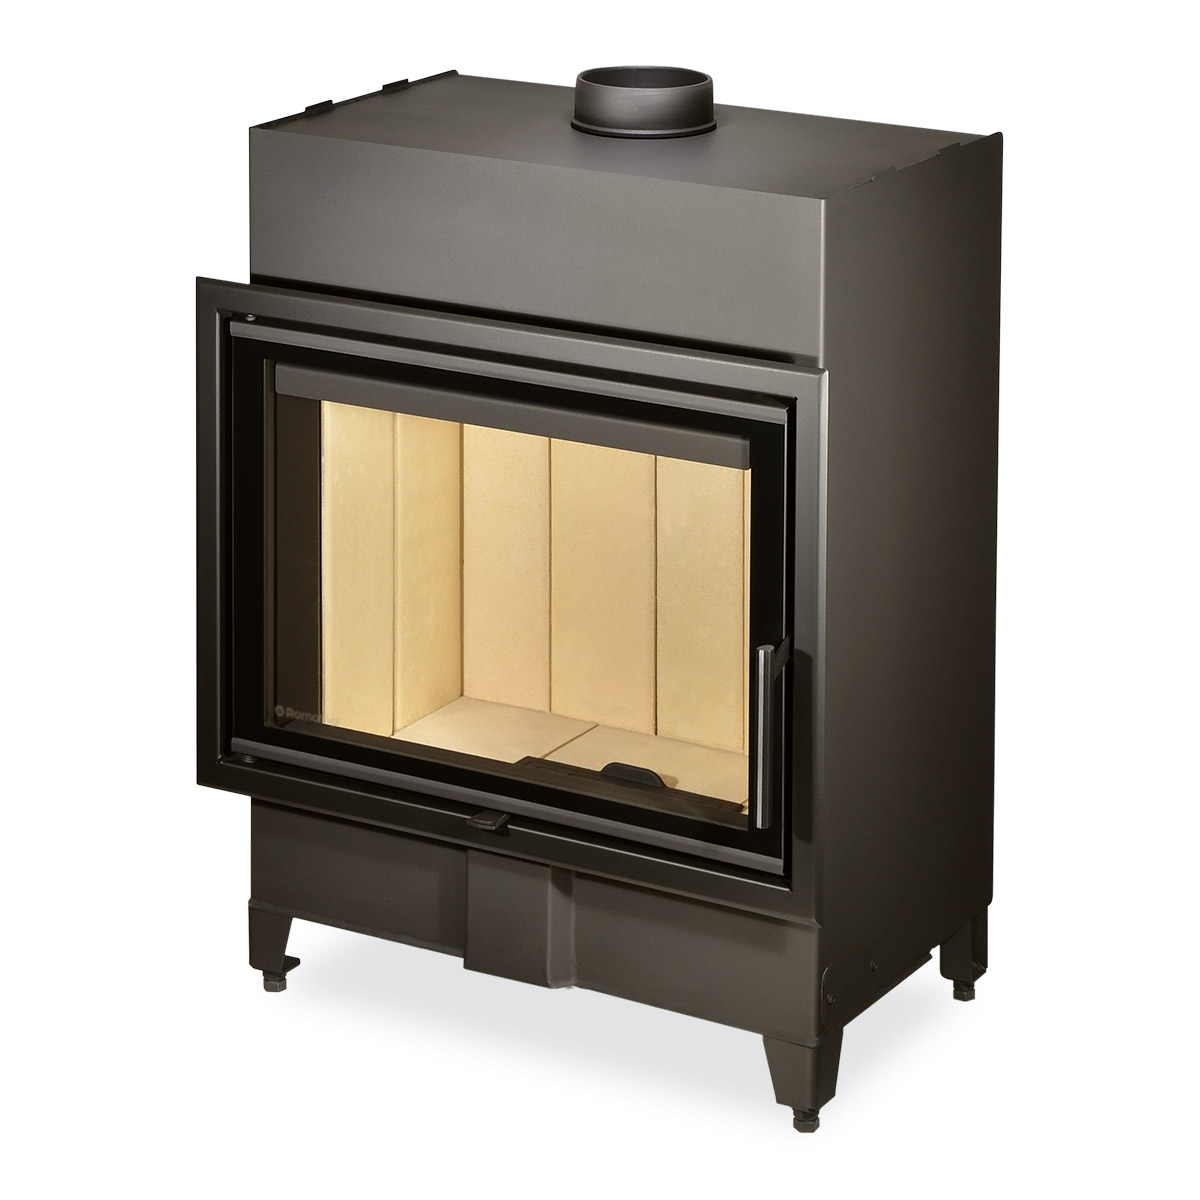 HEAT 2g 70.50.01 - straight fireplace insert